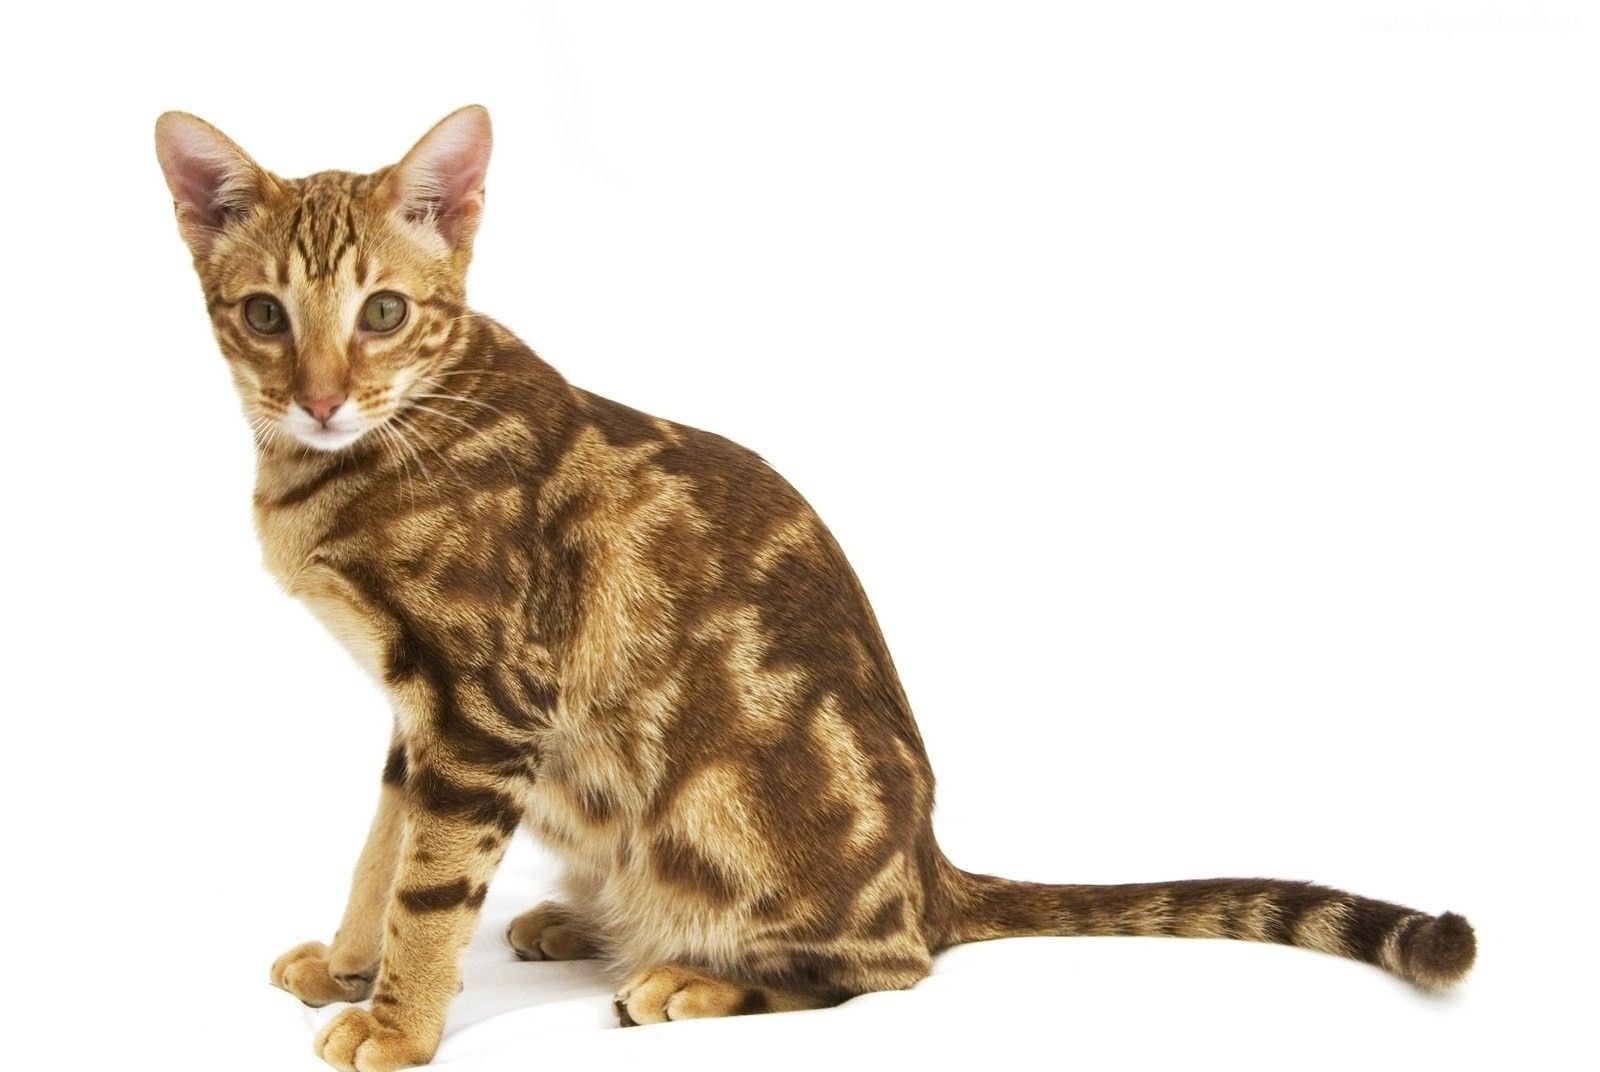 The Ocicat Cat is an all domestic breed of cat which resembles a